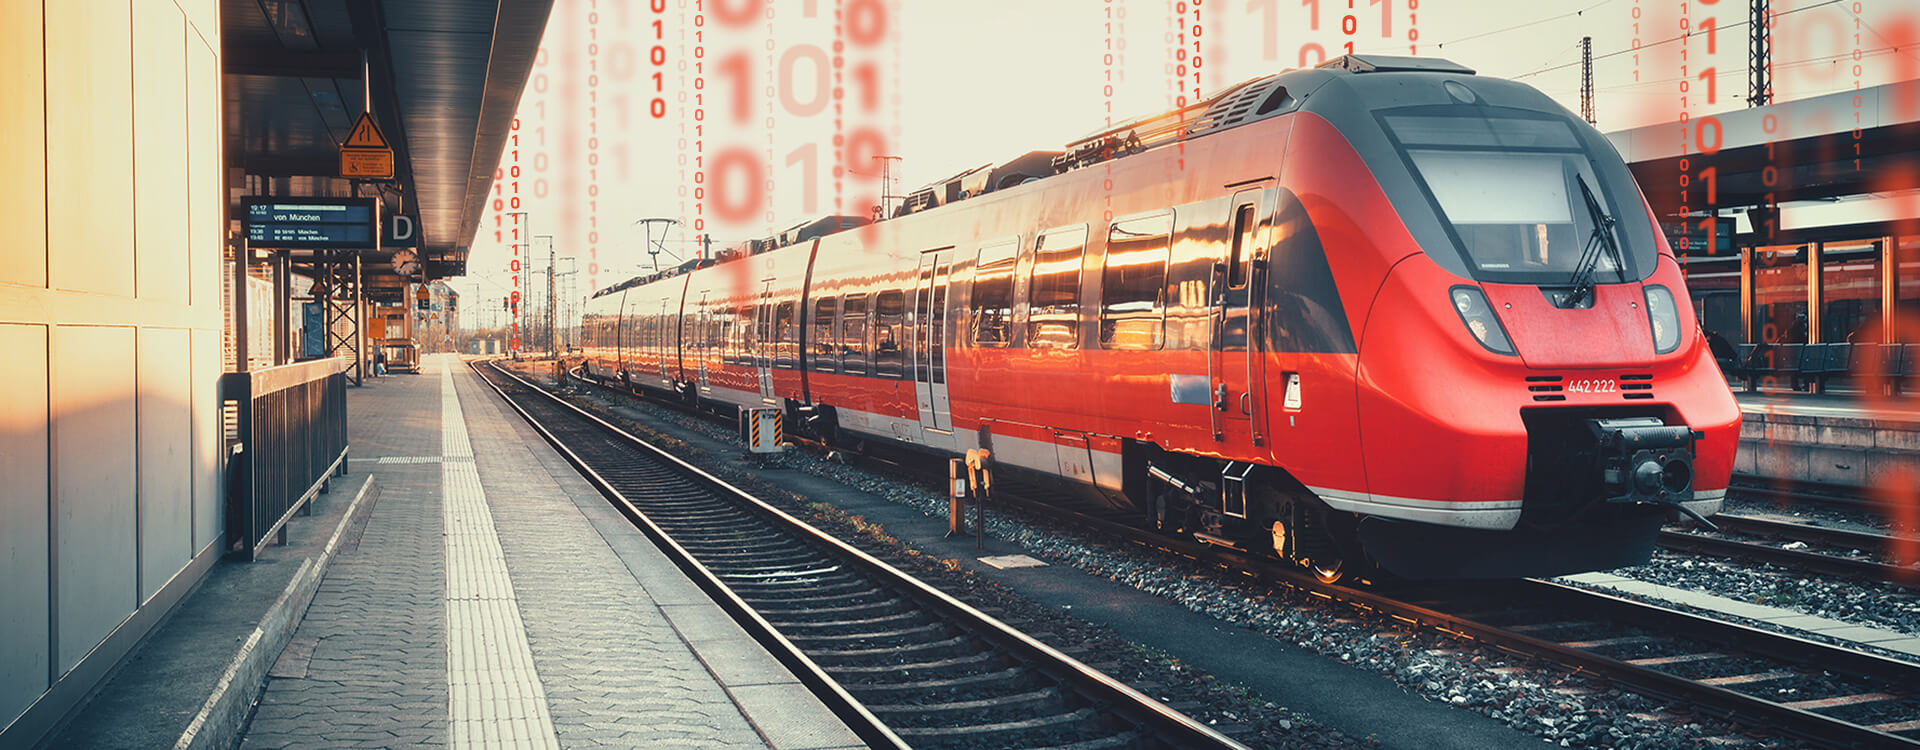 brn-What if the railway industry can utilize data to its full potential